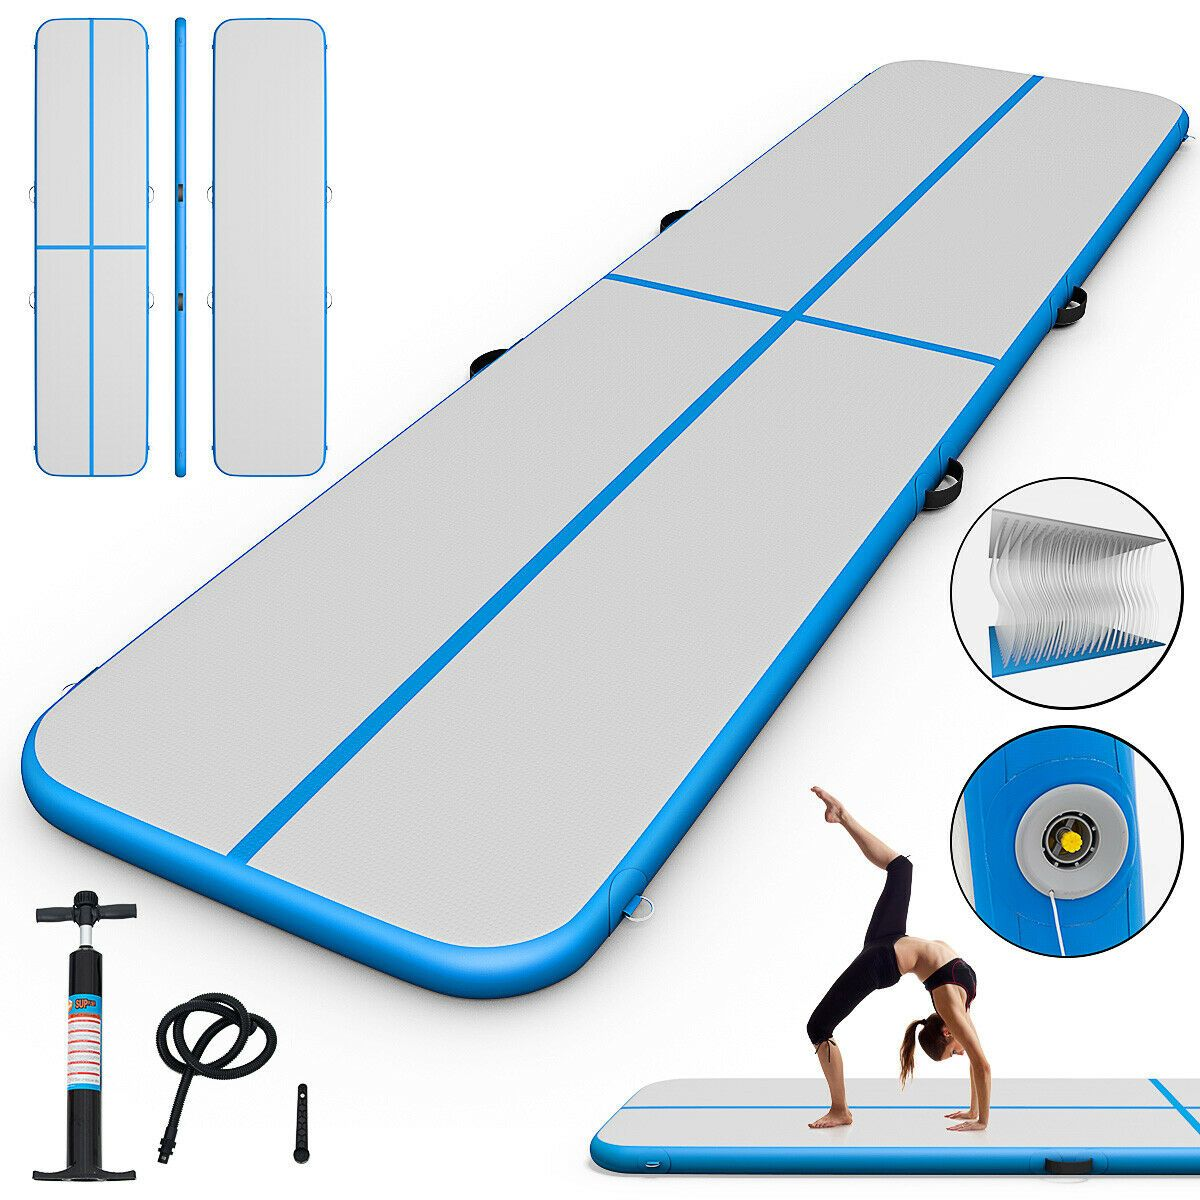 Sports & Outdoors Gymnastics mats, Gymnastics, Blue pumps